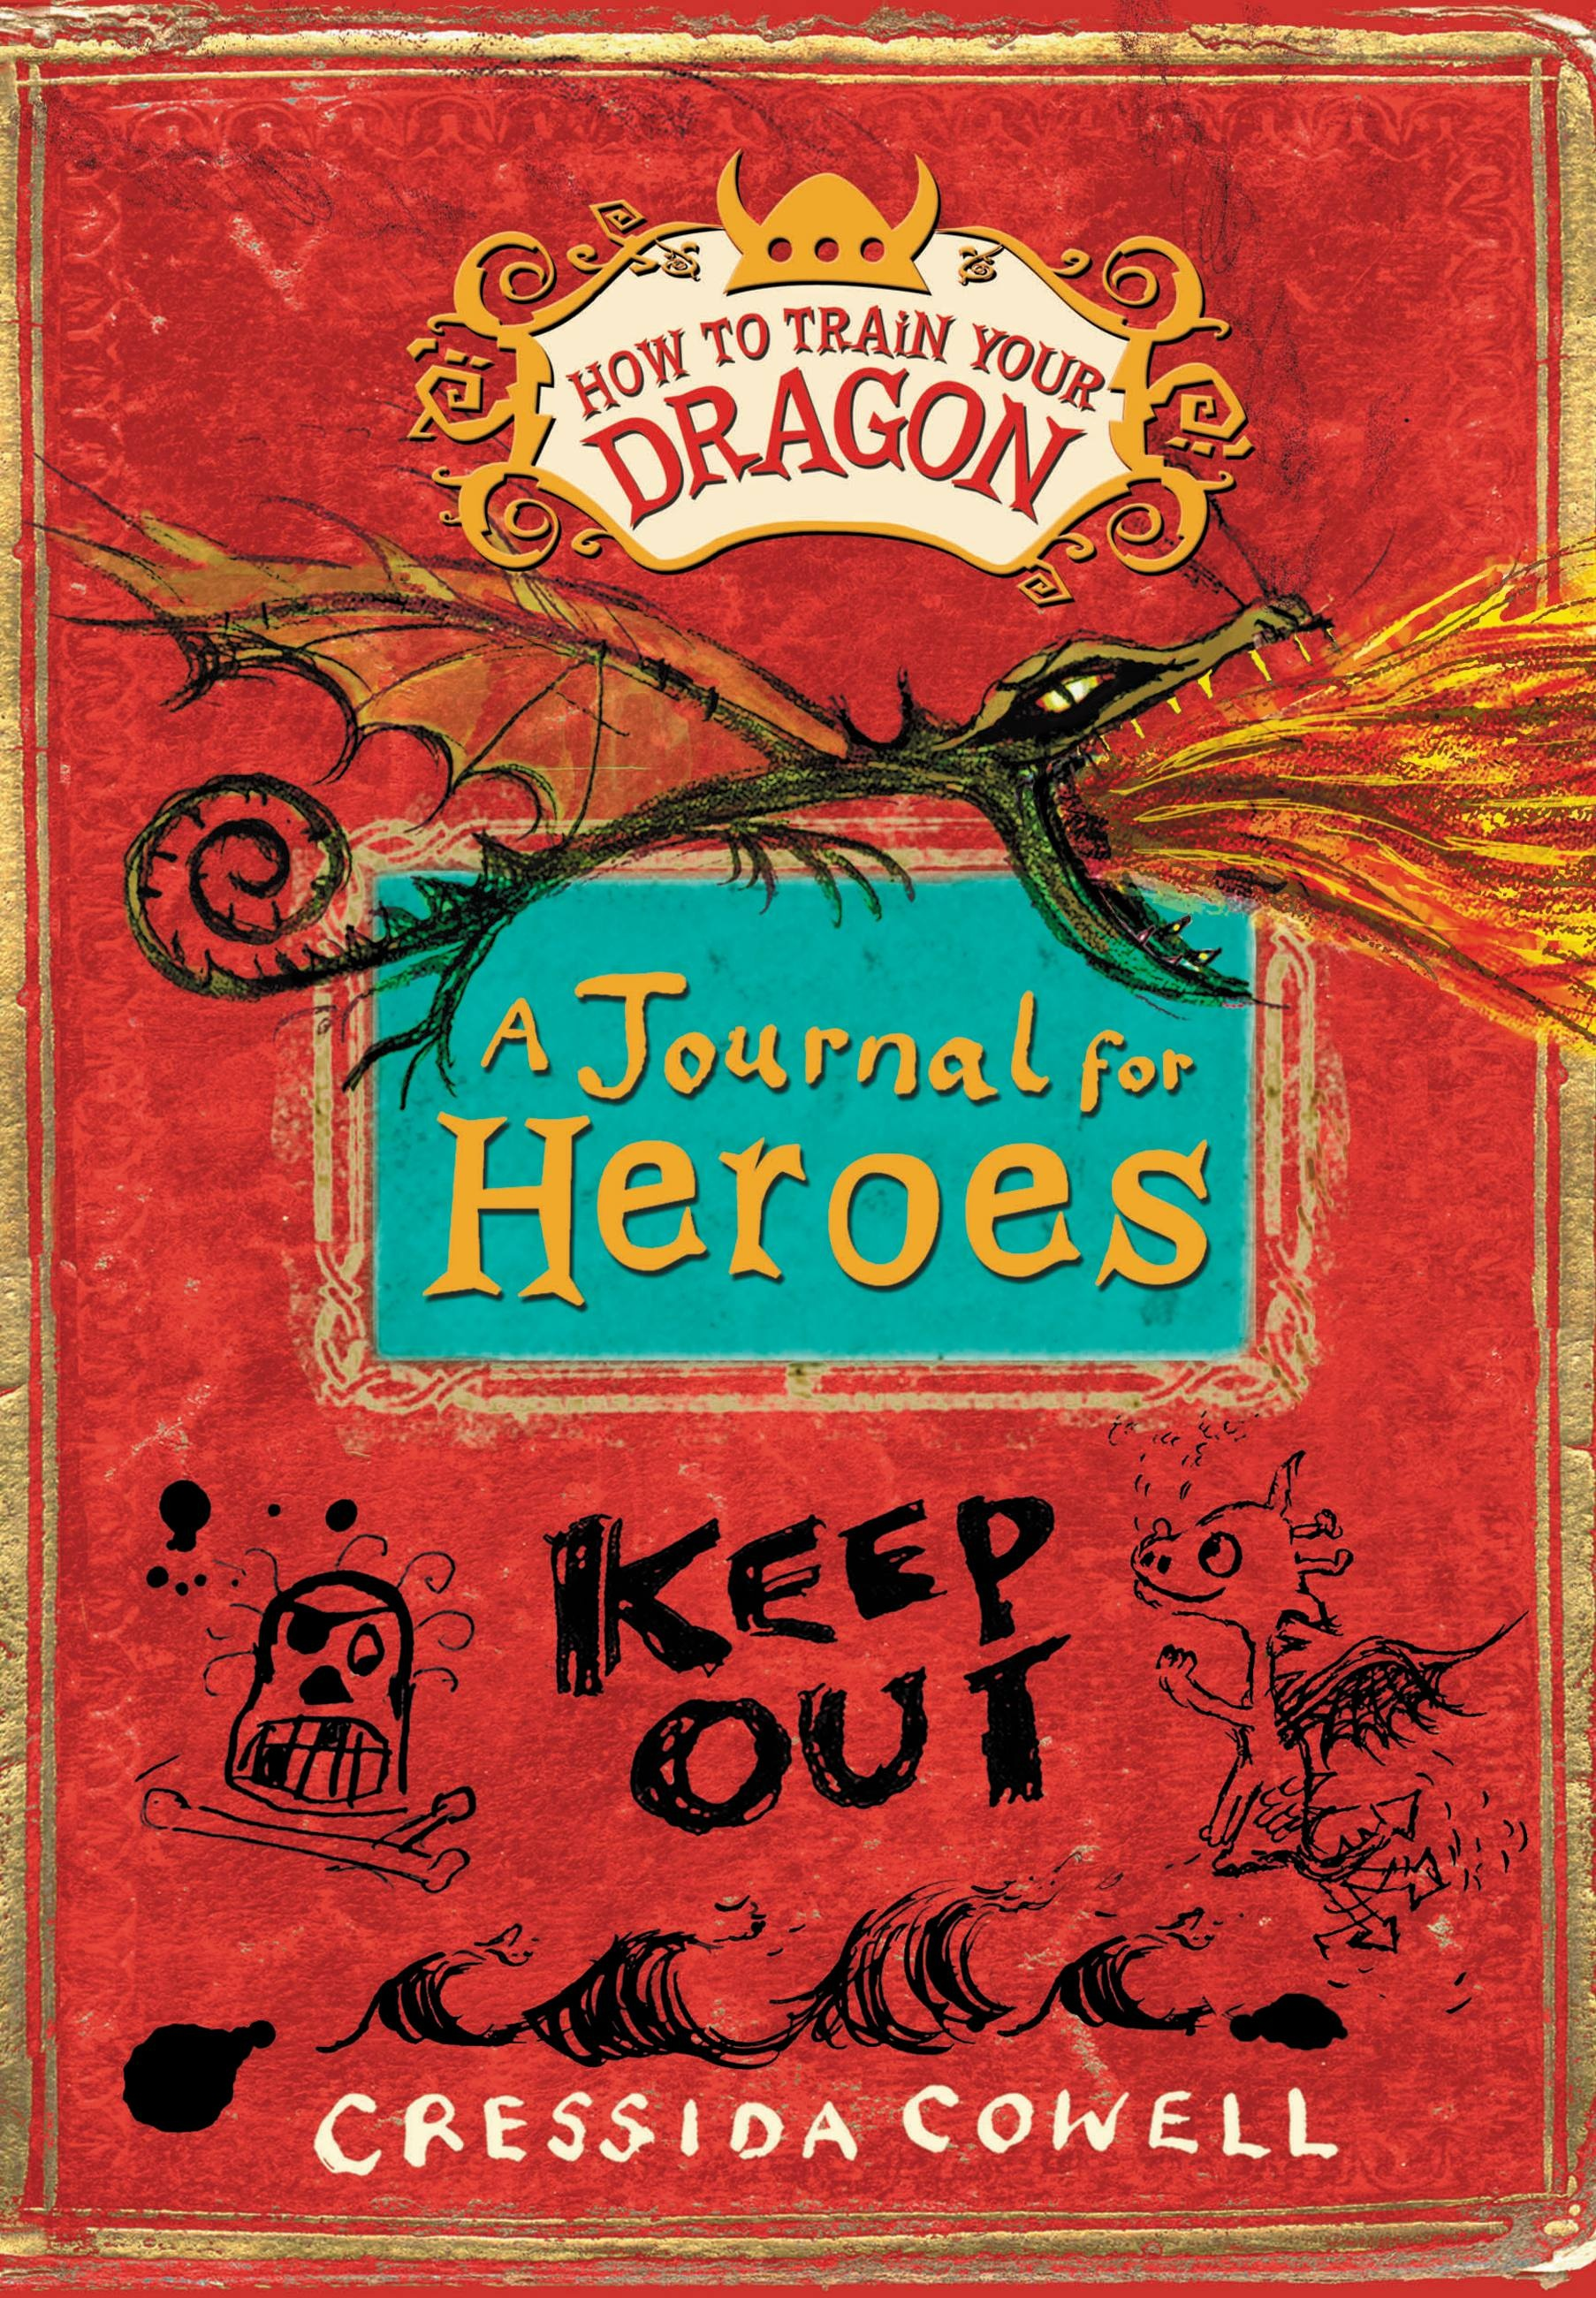 How to train your dragon a journal for heroes by cressida cowell how to train your dragon a journal for heroes by cressida cowell little brown books for young readers ccuart Image collections